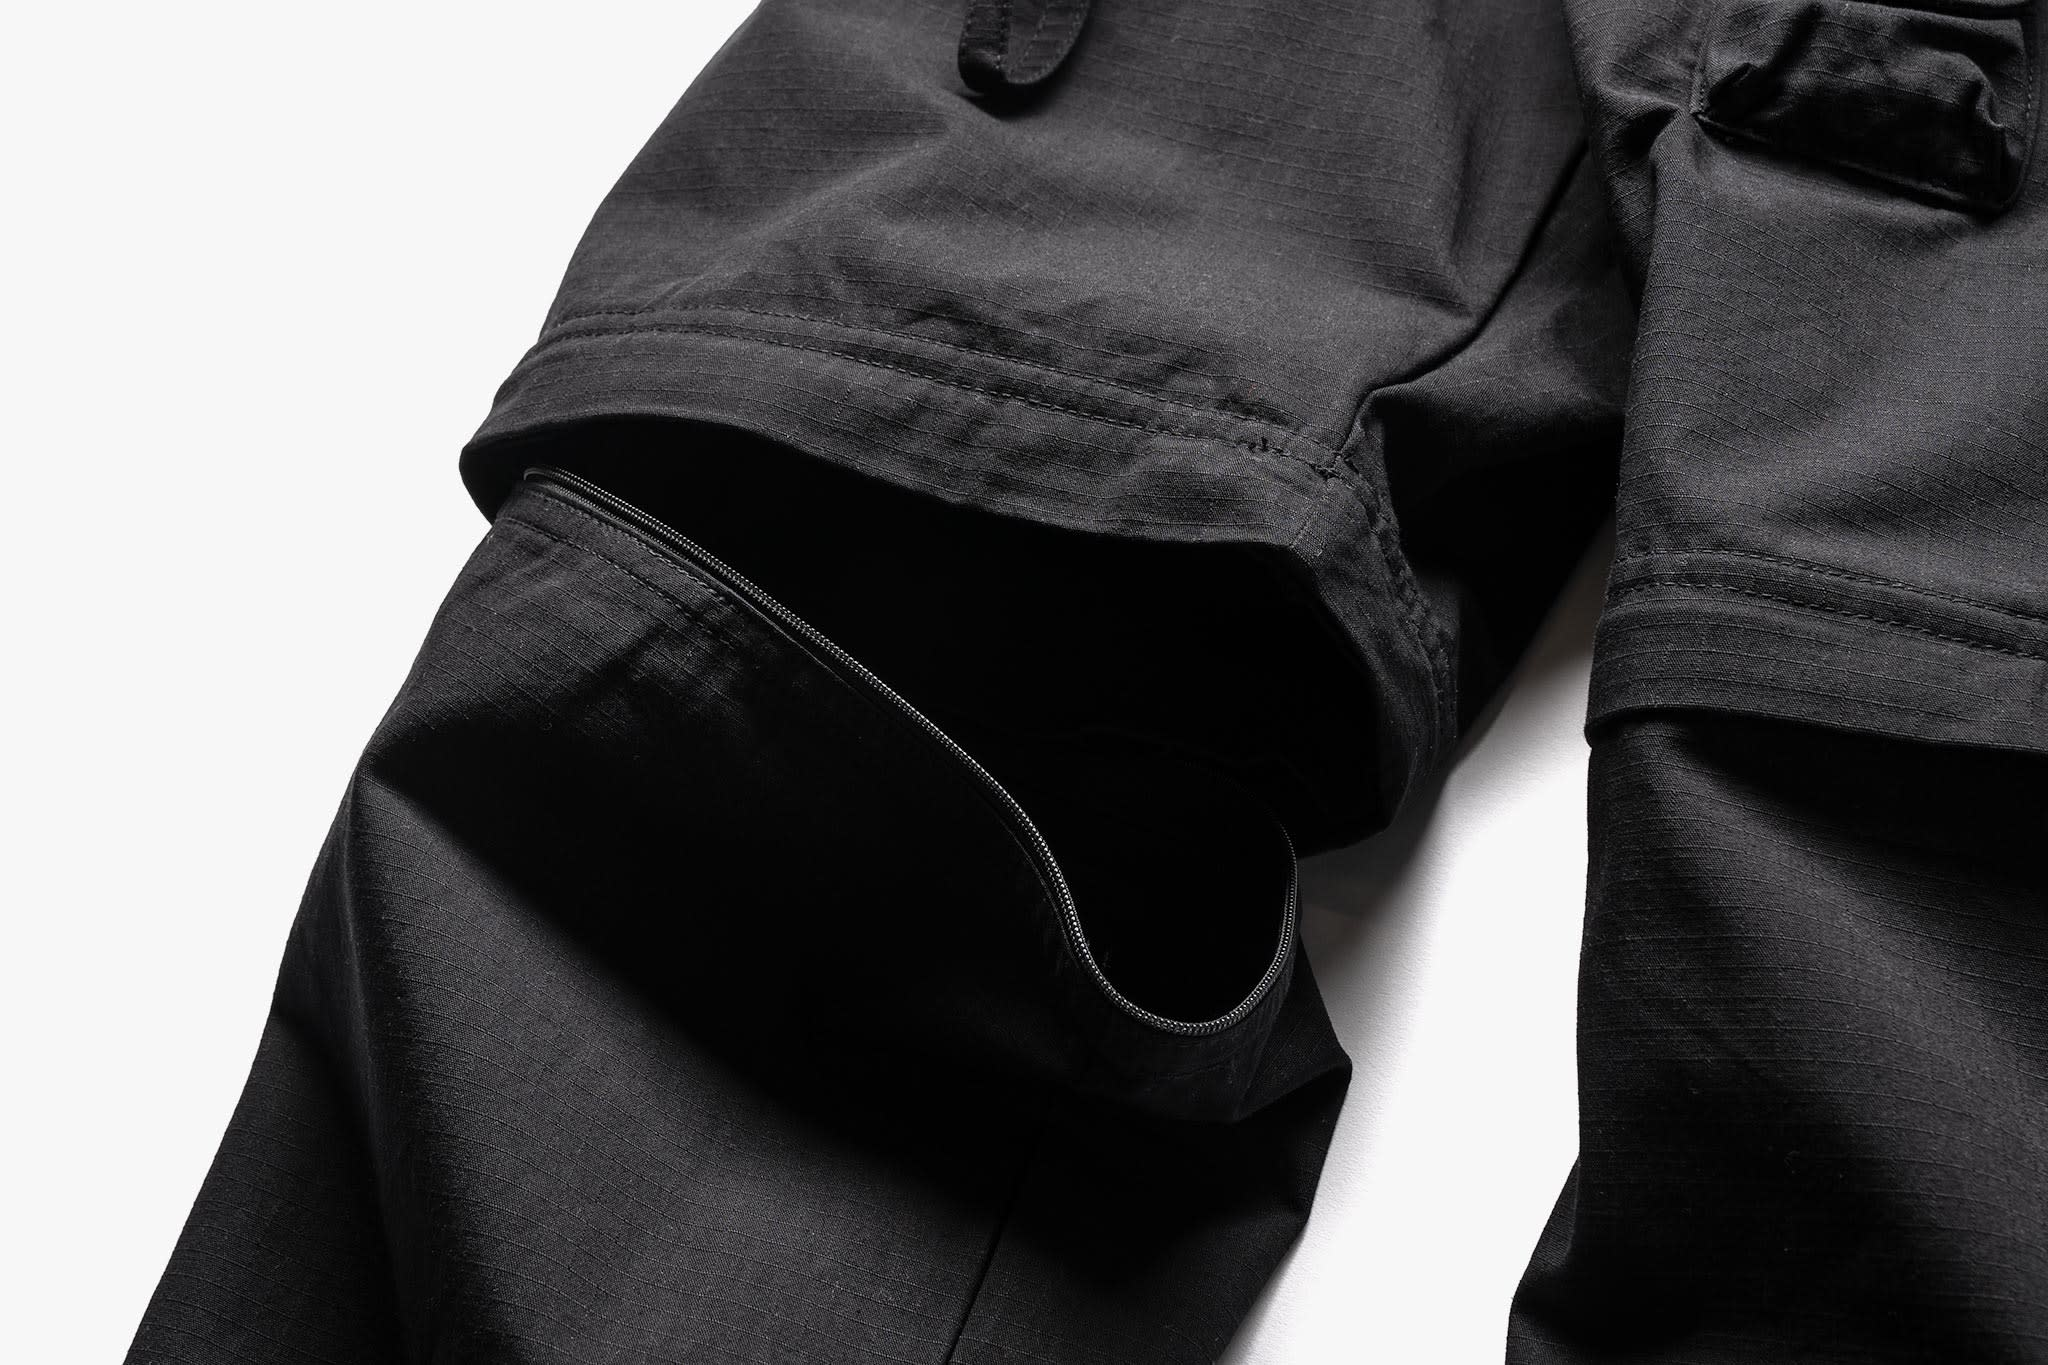 HAVEN MOUNTAIN RESEARCH SS20 NEW ARRIVALS